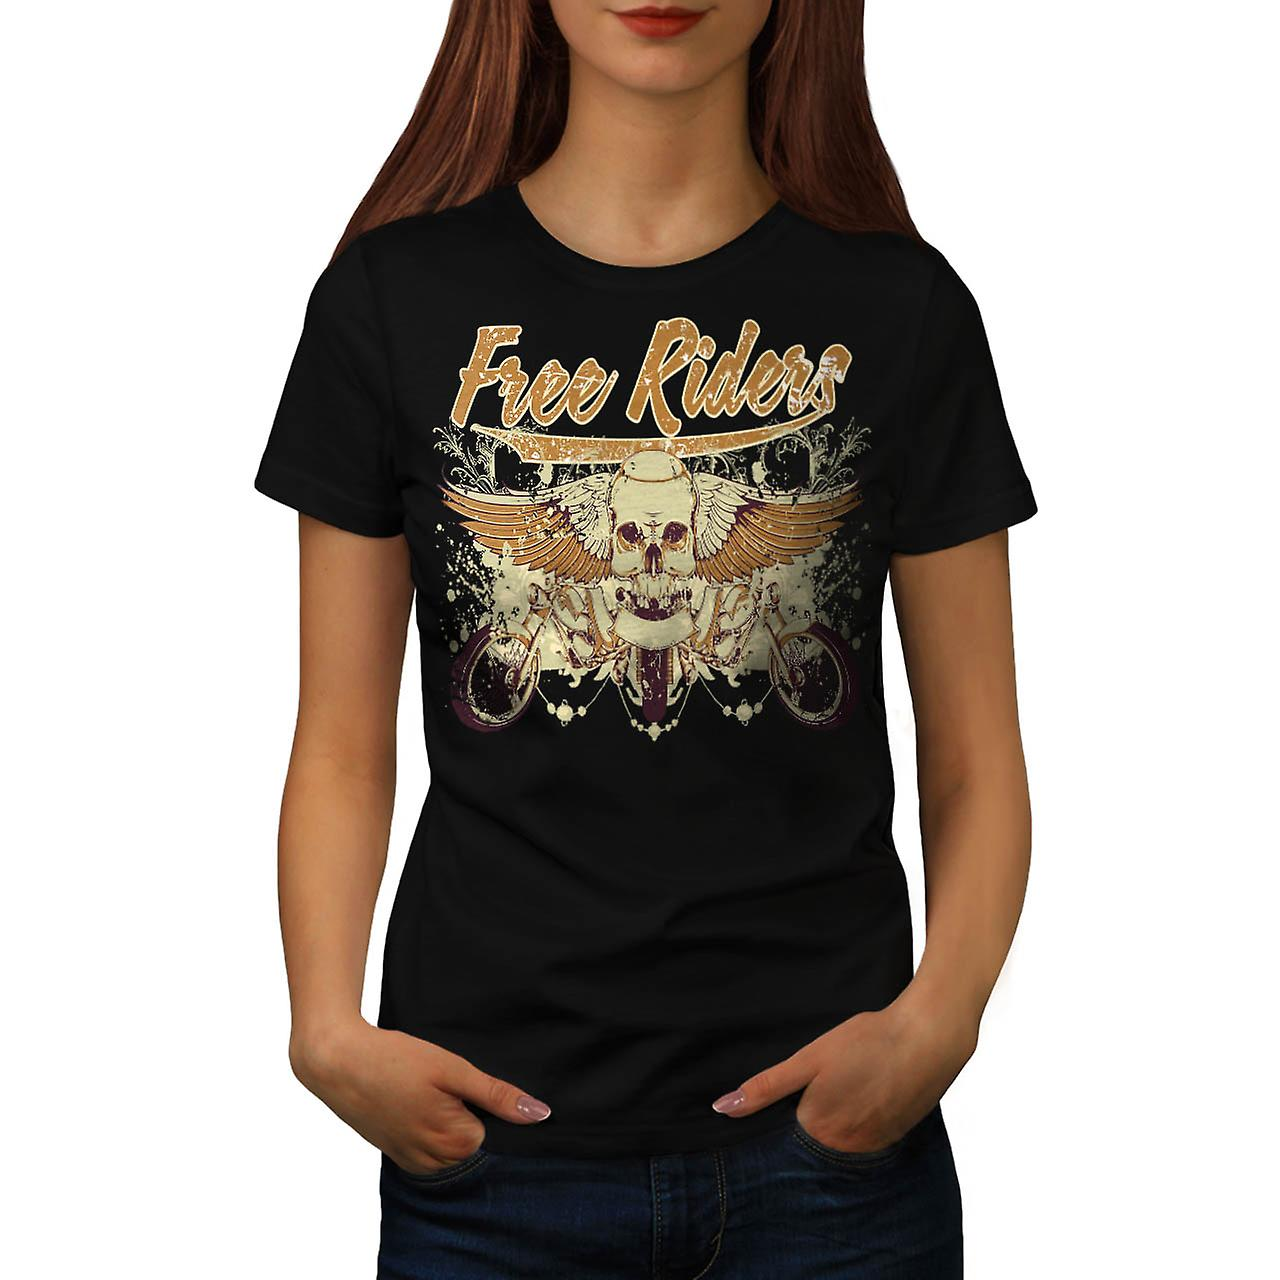 Free Rider Bike Gang Biker Life Women Black T-shirt | Wellcoda